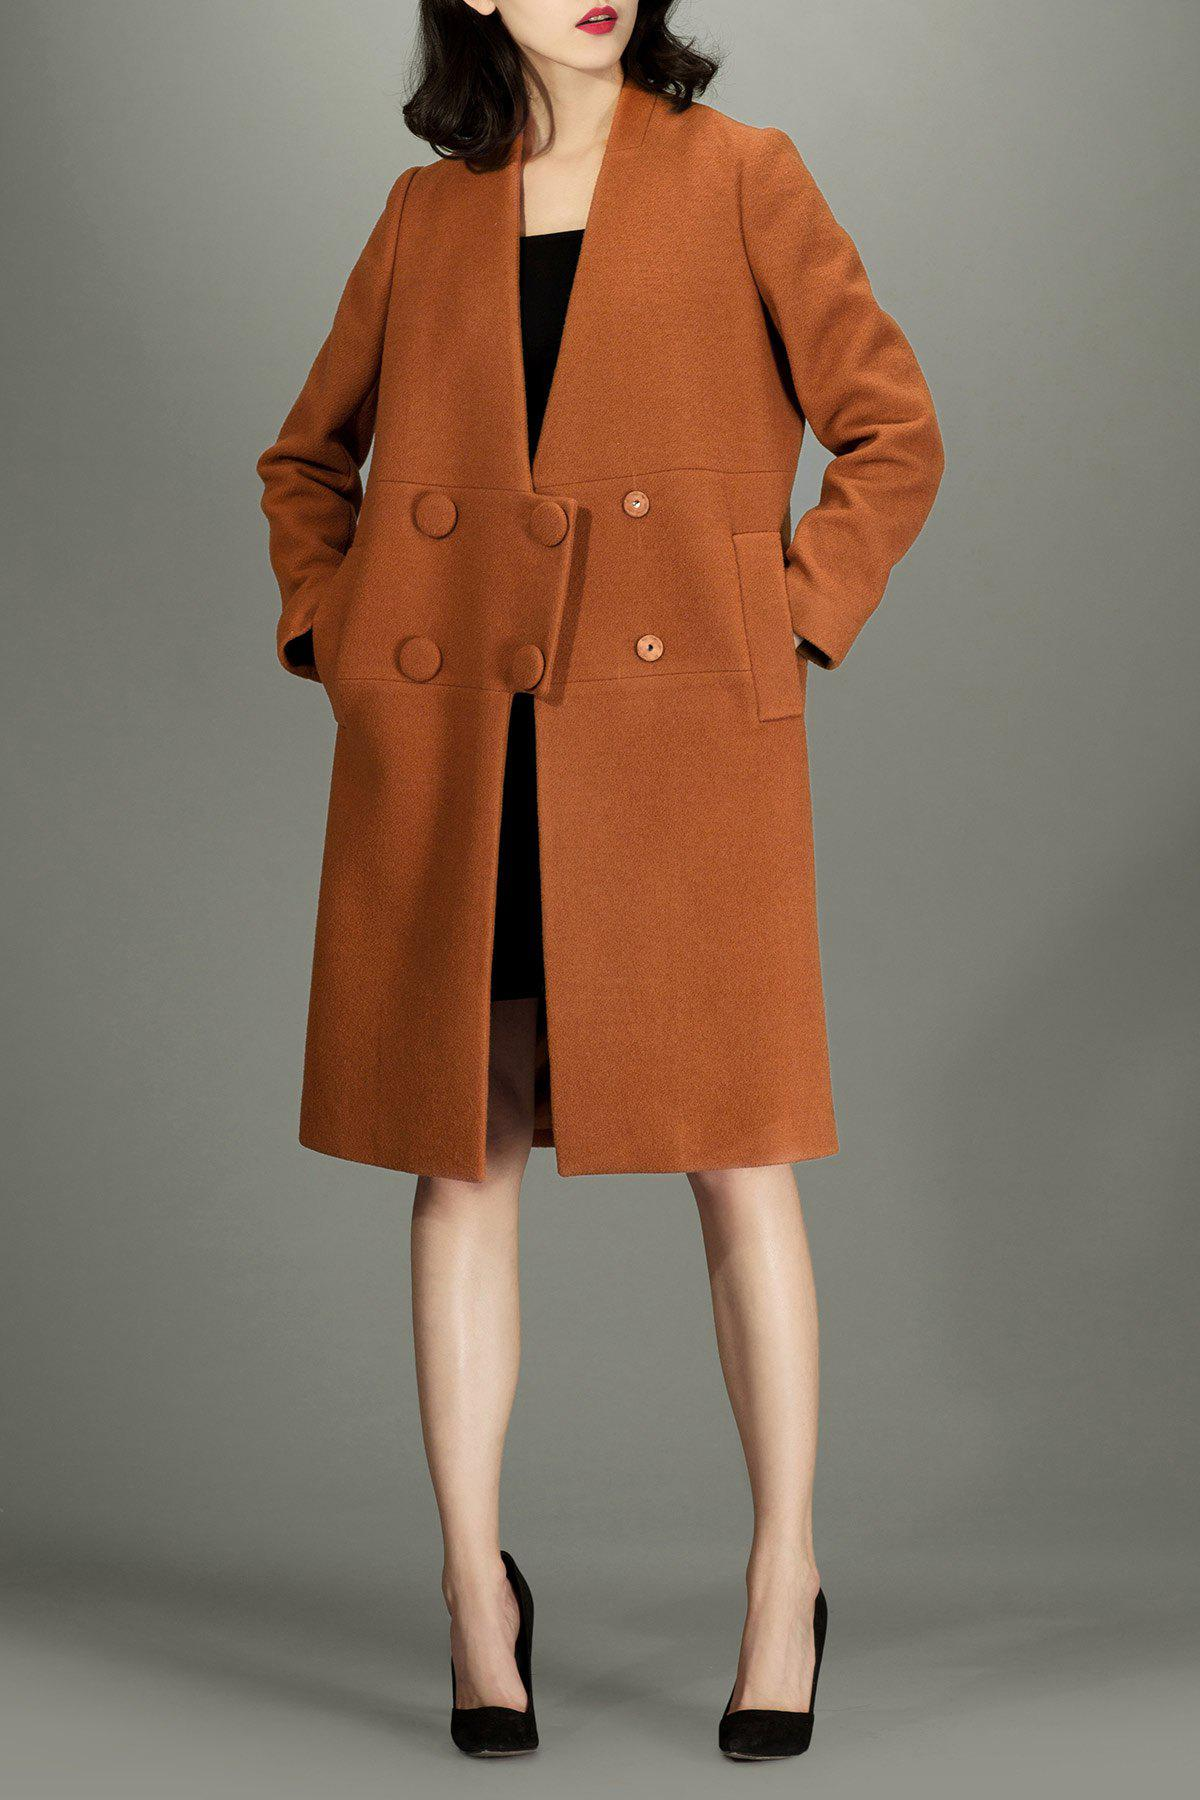 V Neck Walker Wool Coat - ANTIQUE BROWN L